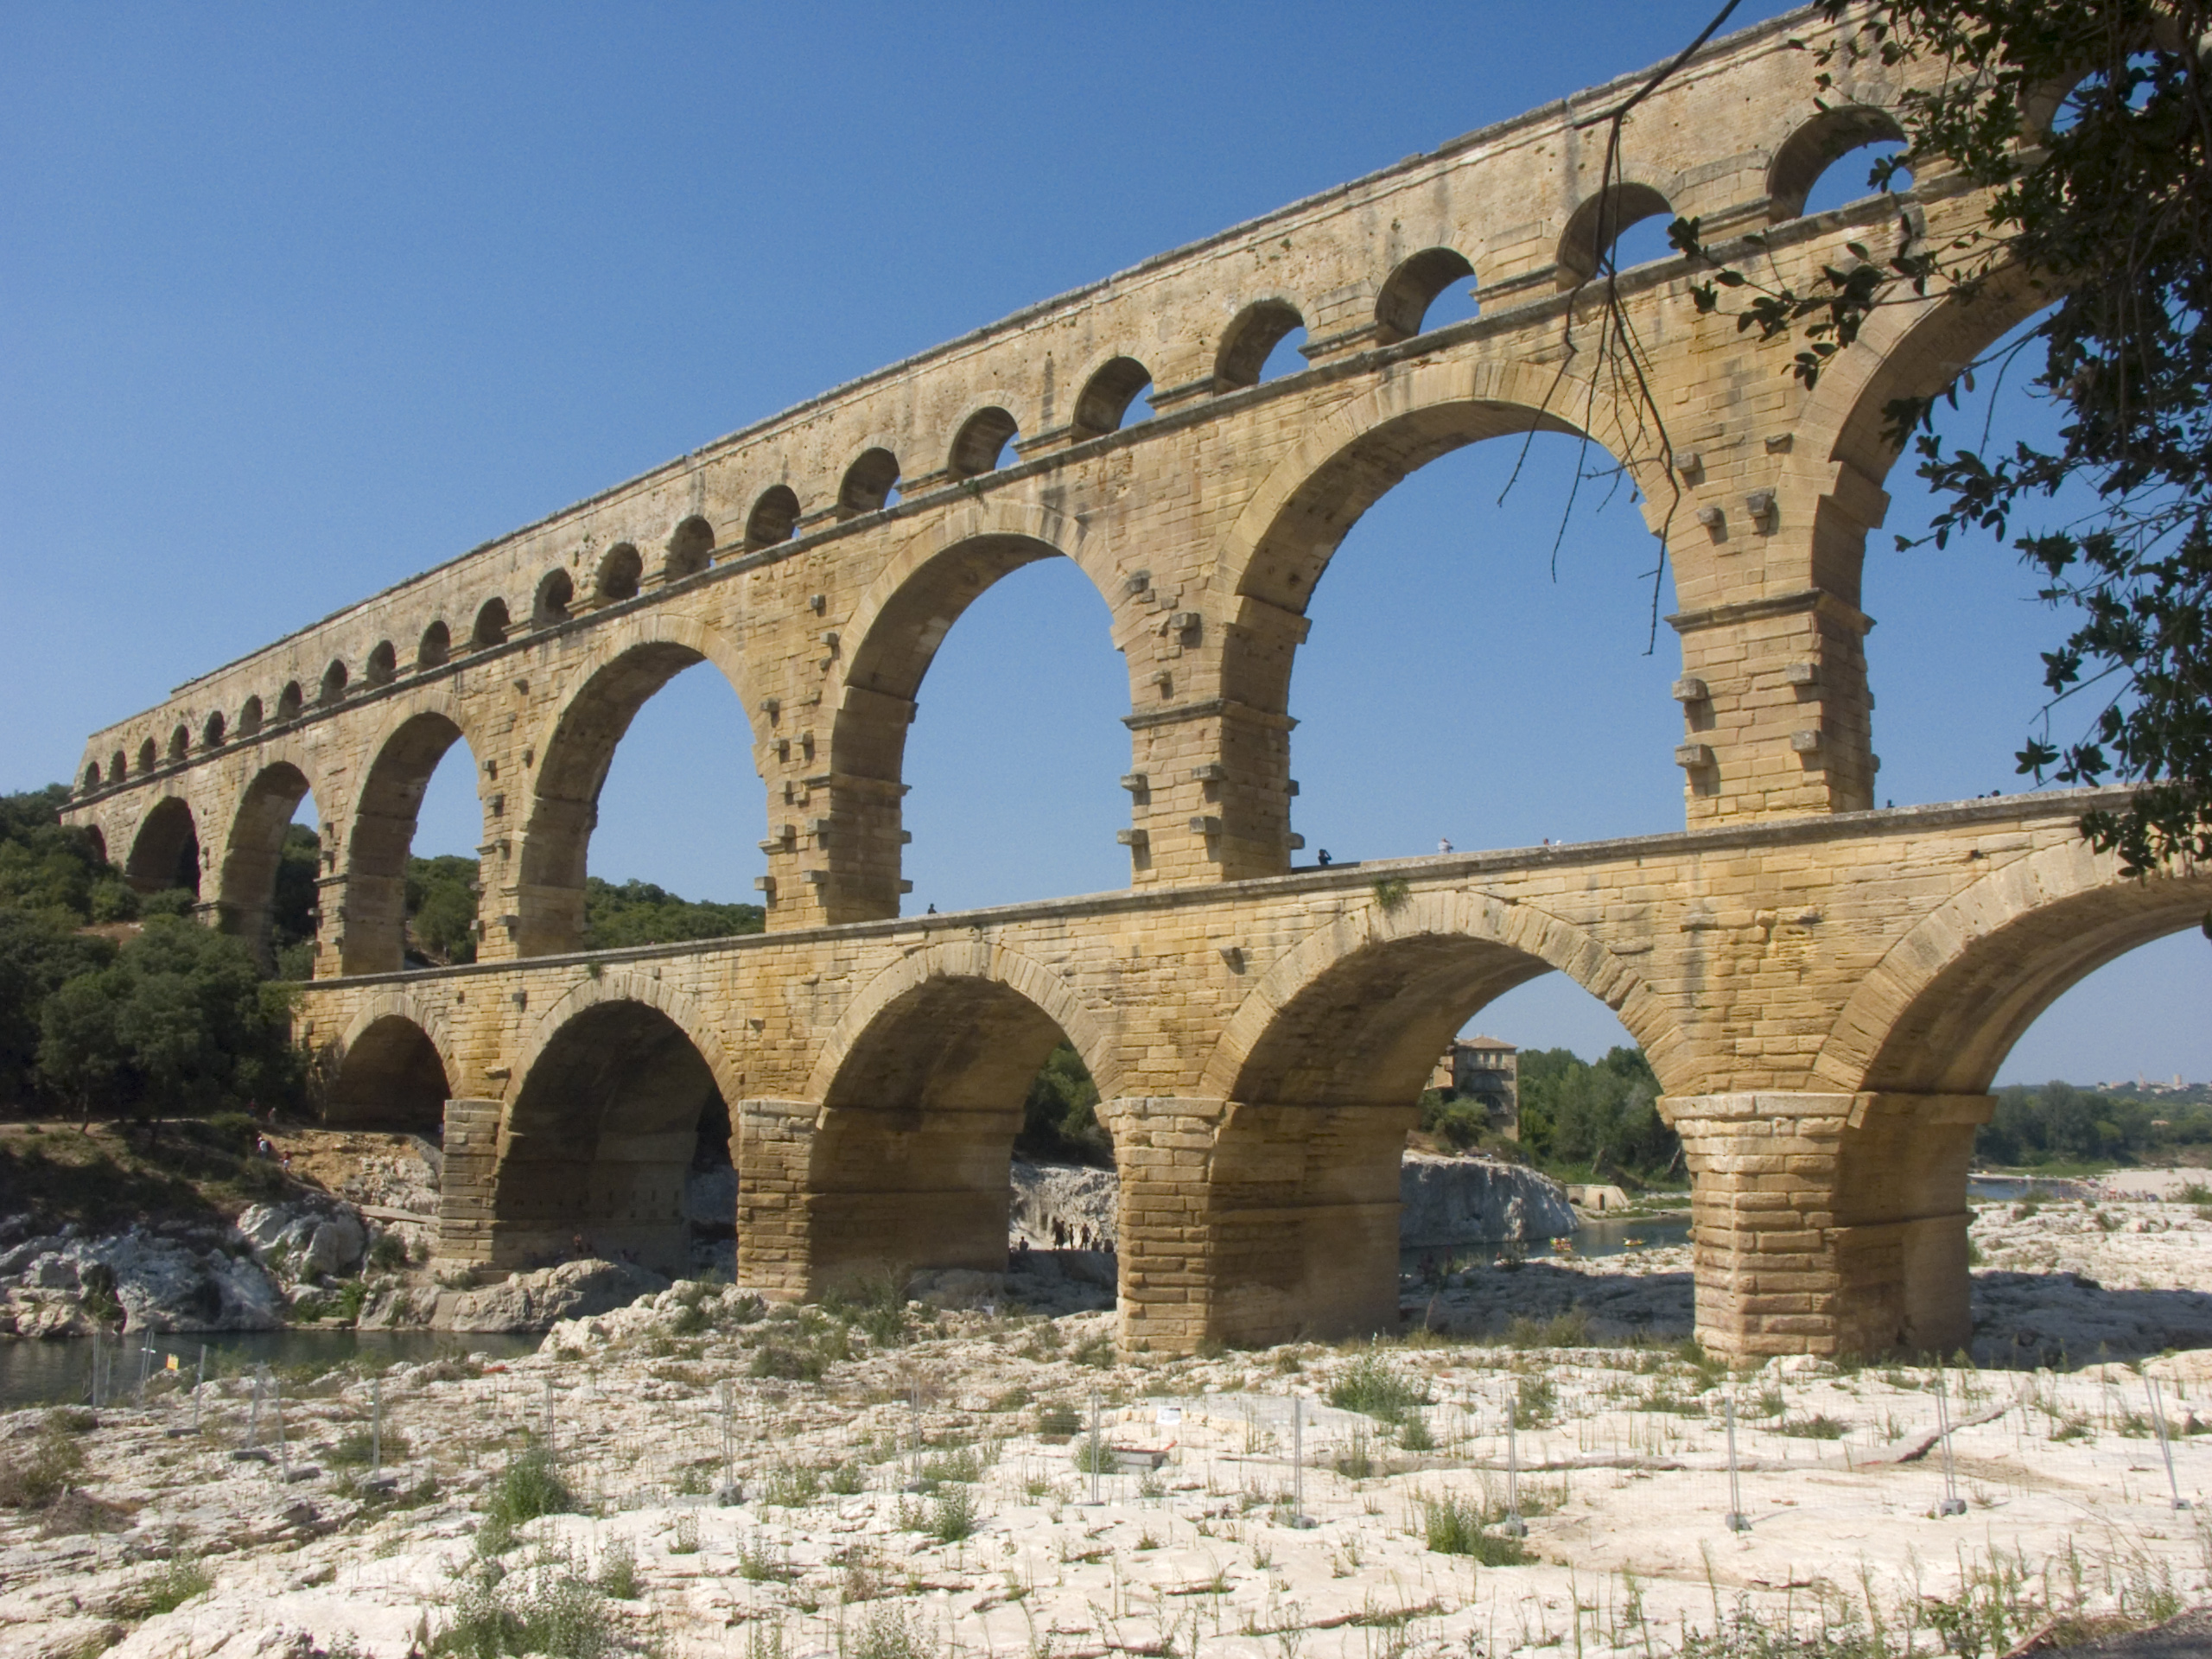 Vers pont du gard wikiwand for Architecture romaine